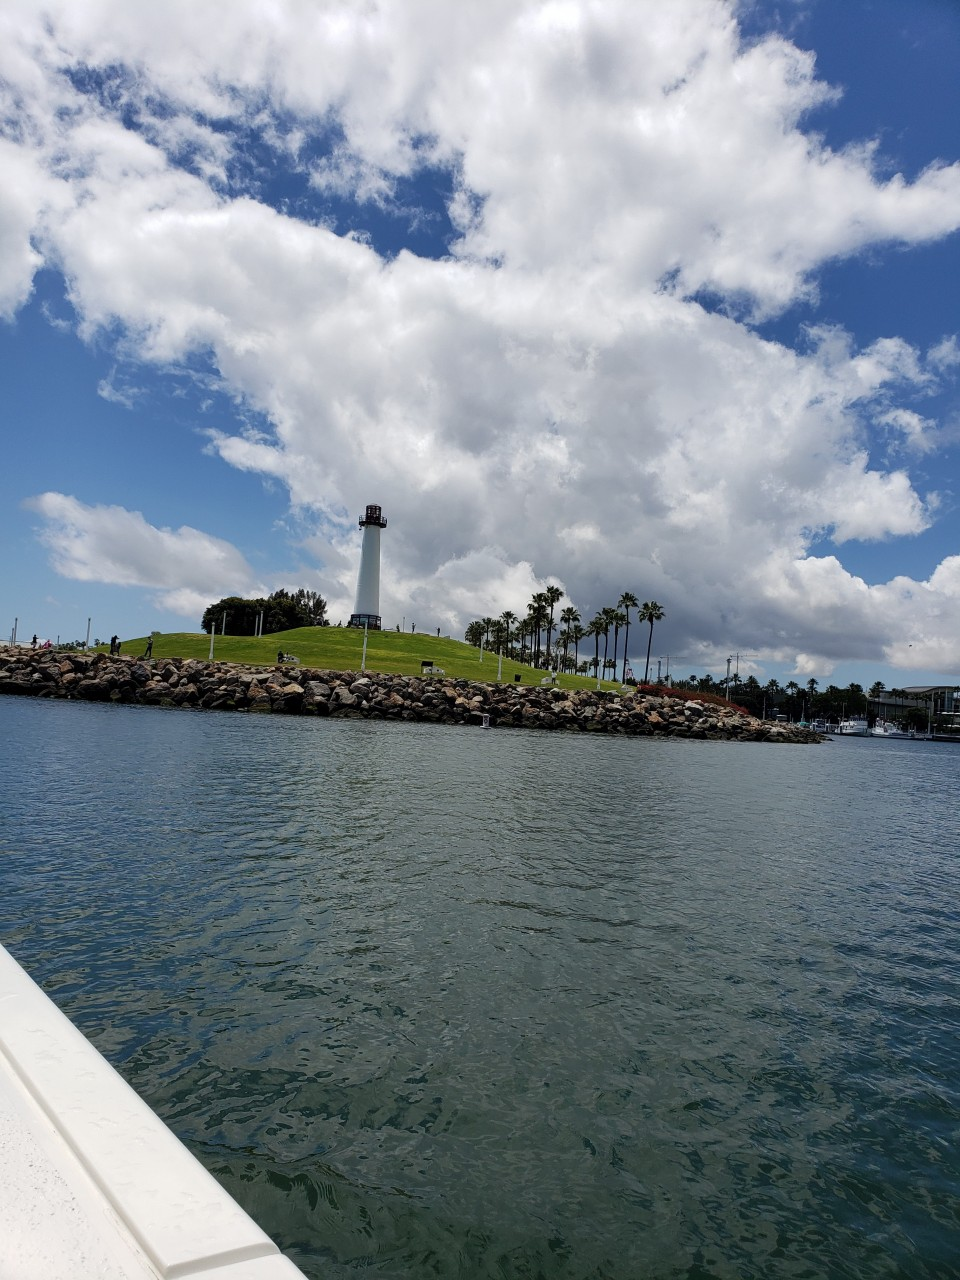 Long Beach California is certainly a beautiful place to go boating to experience the harbor.